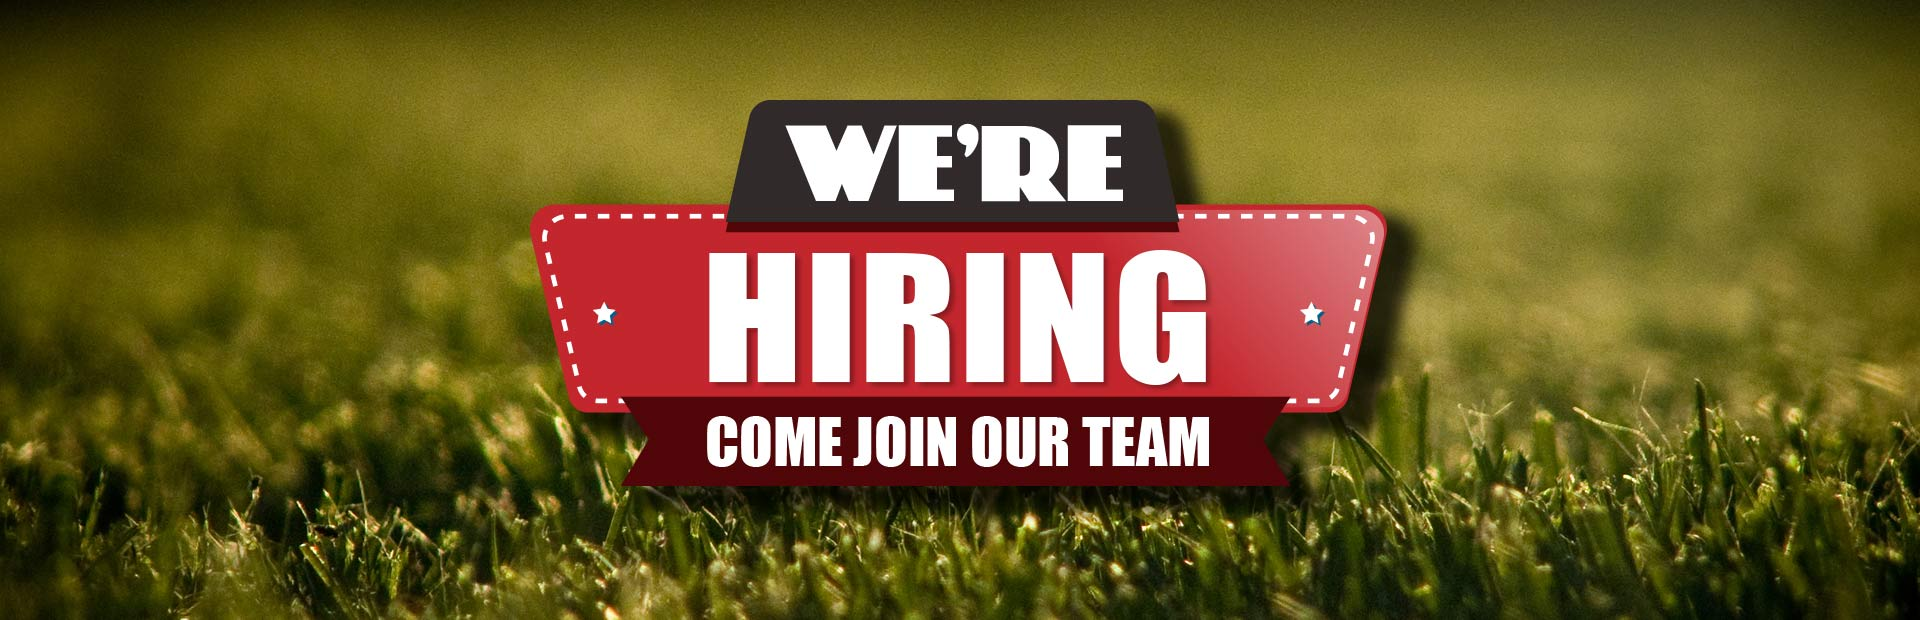 Now Hiring: Come join our team! Contact us for details.